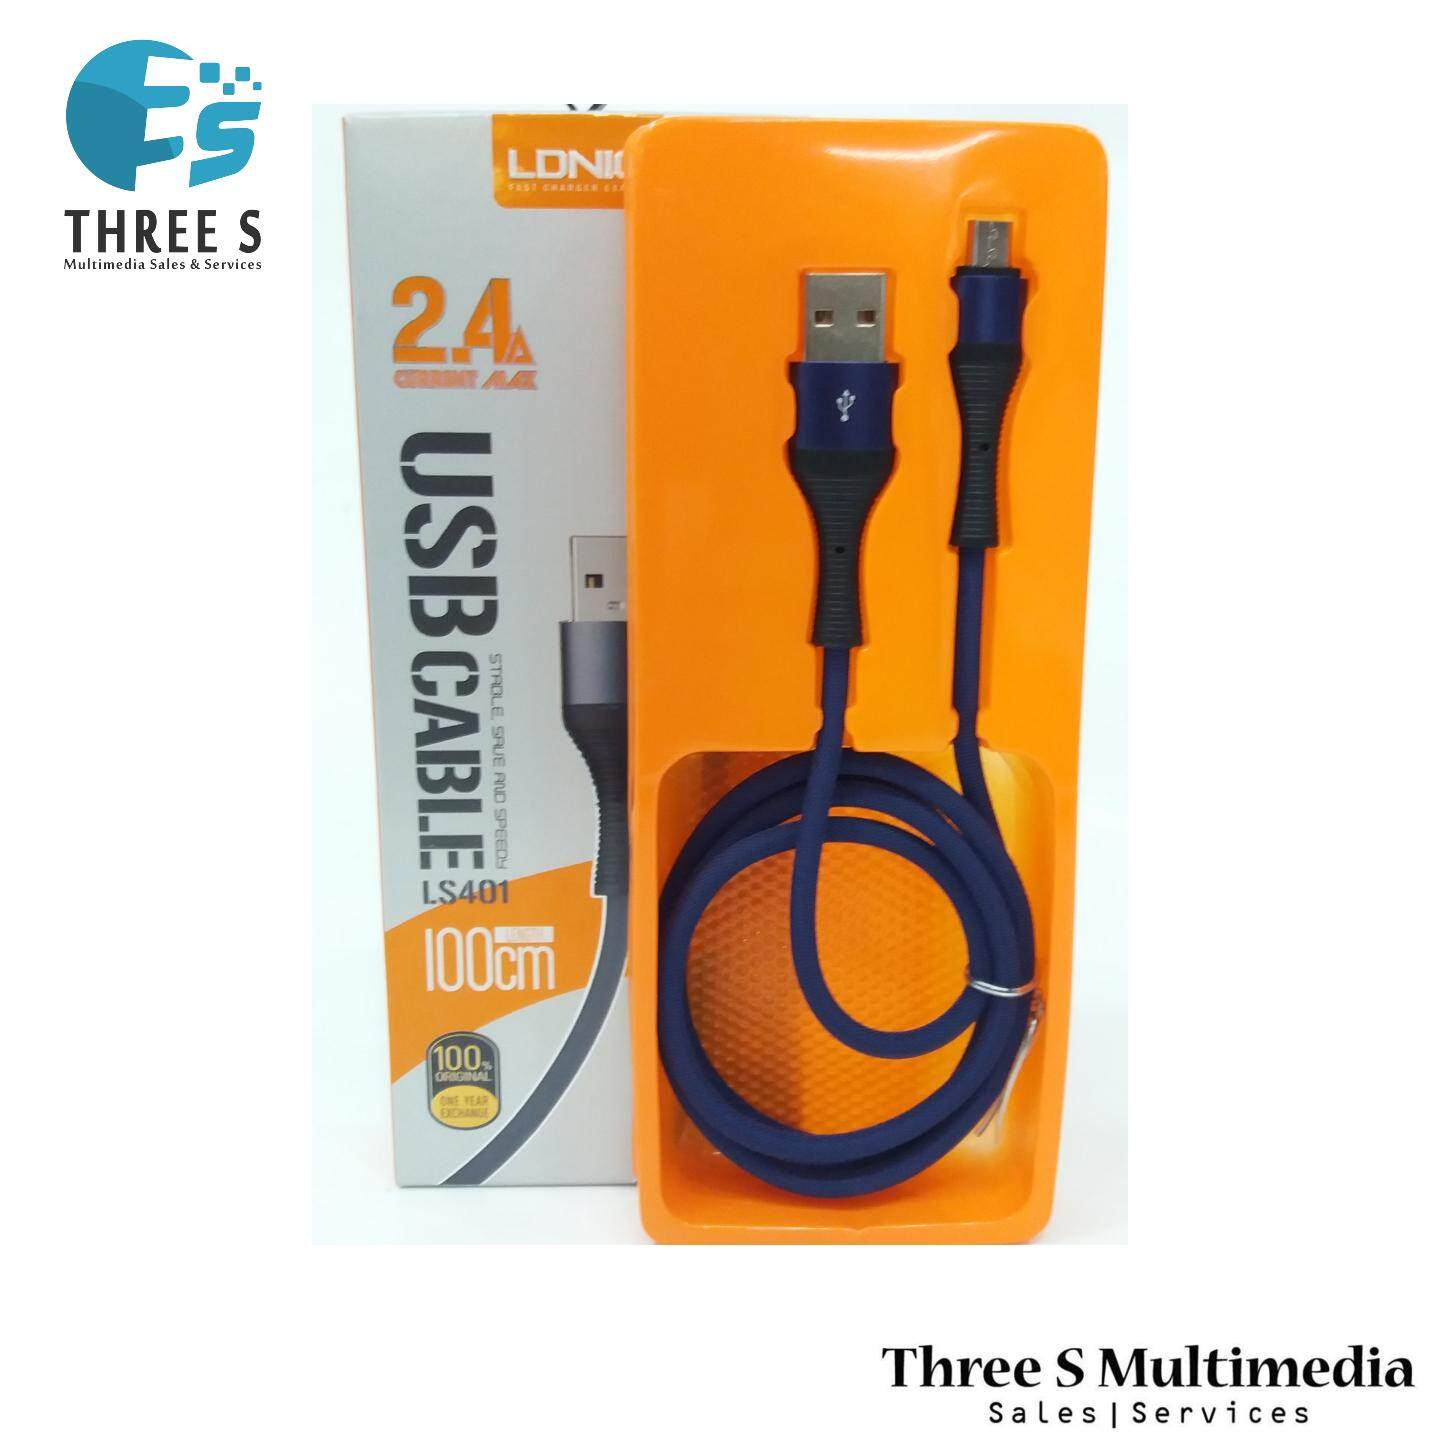 LDNIO USB CABLE LS401 FAST CHARGER 2.4A